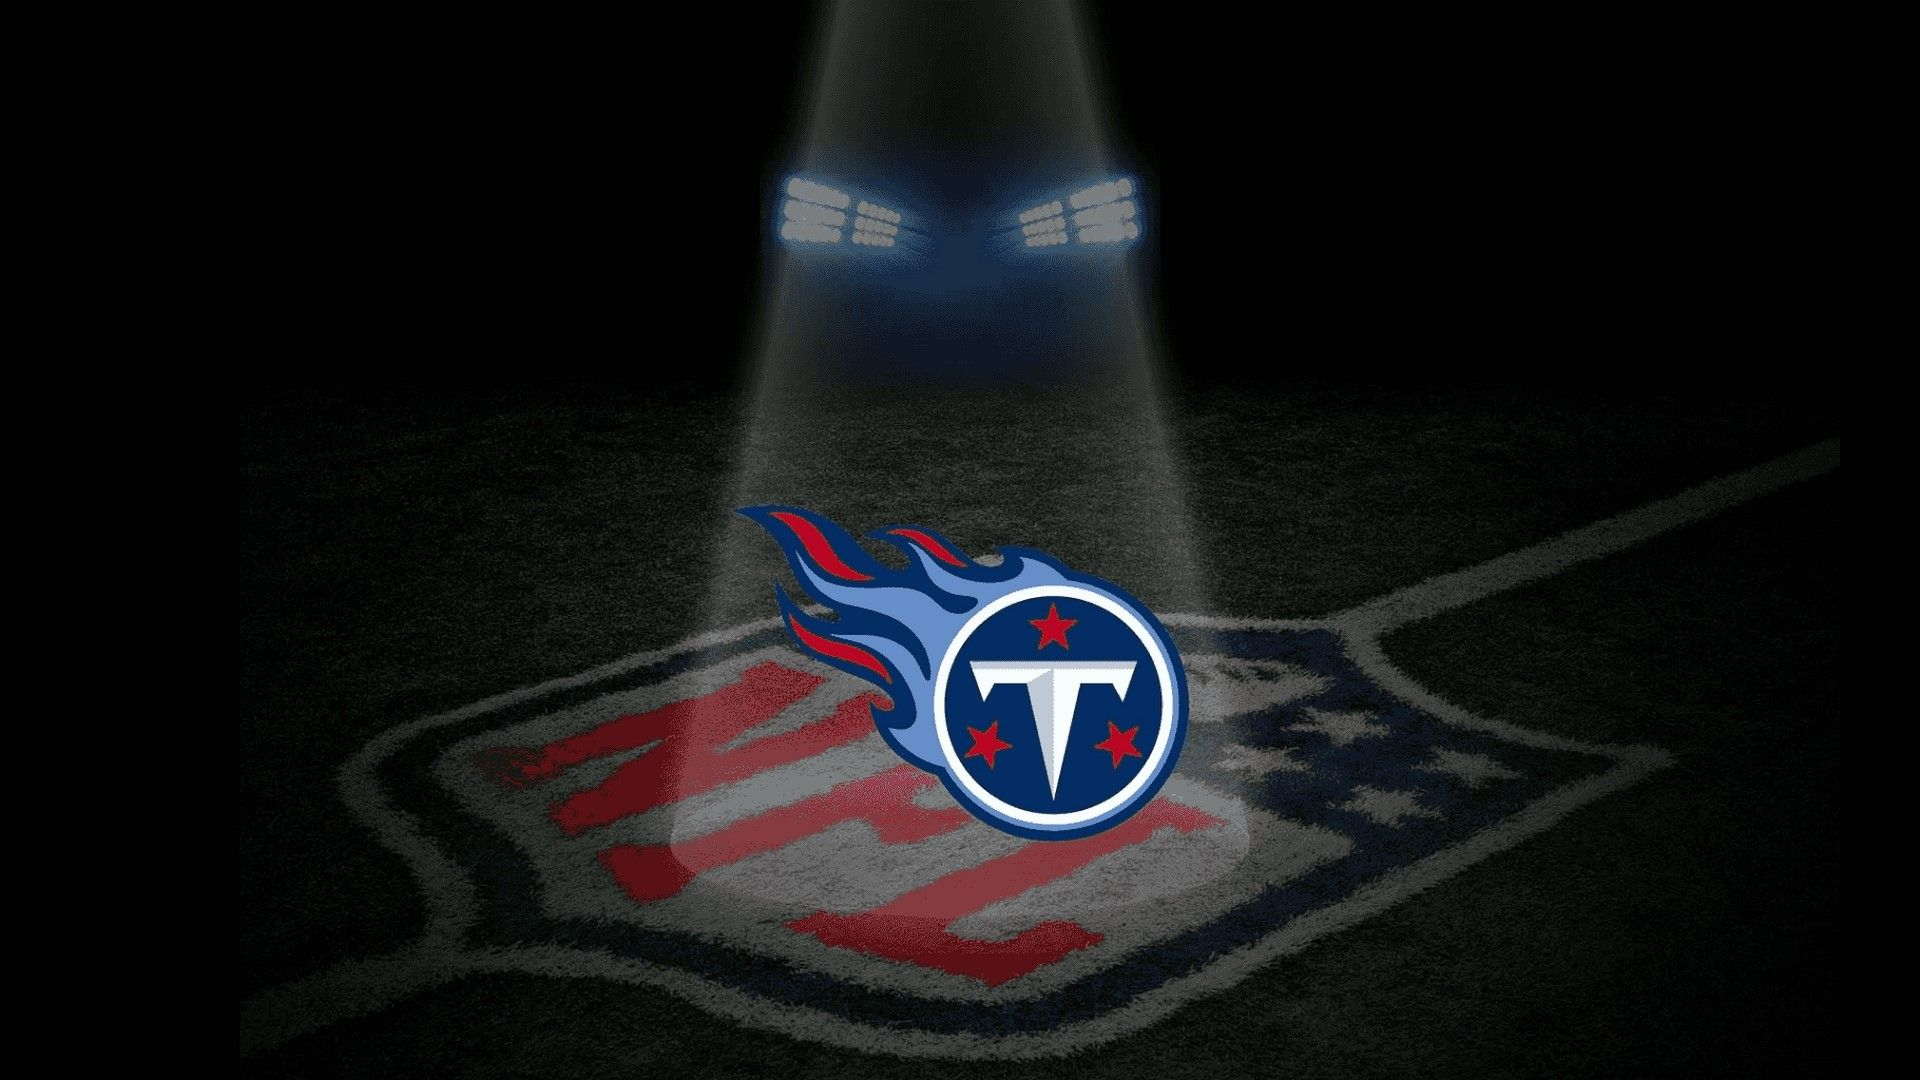 HD Backgrounds Tennessee Titans Nfl football wallpaper